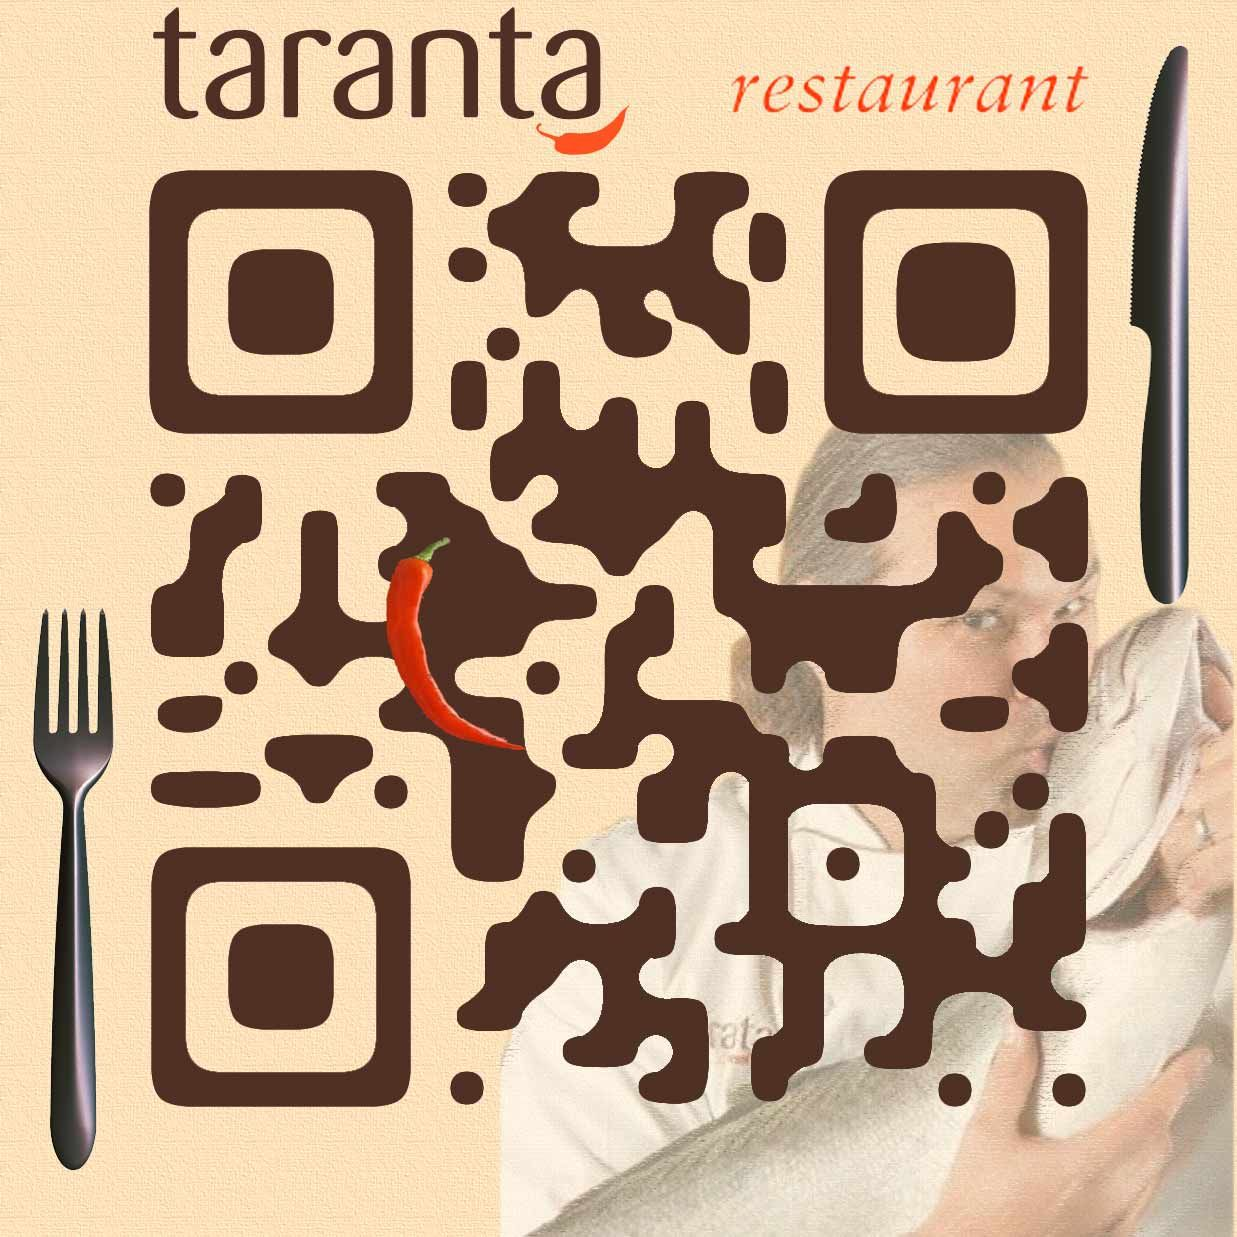 Awesome idea for business carddesign qr code for taranta restaurant awesome idea for business carddesign qr code for taranta restaurant in boston colourmoves